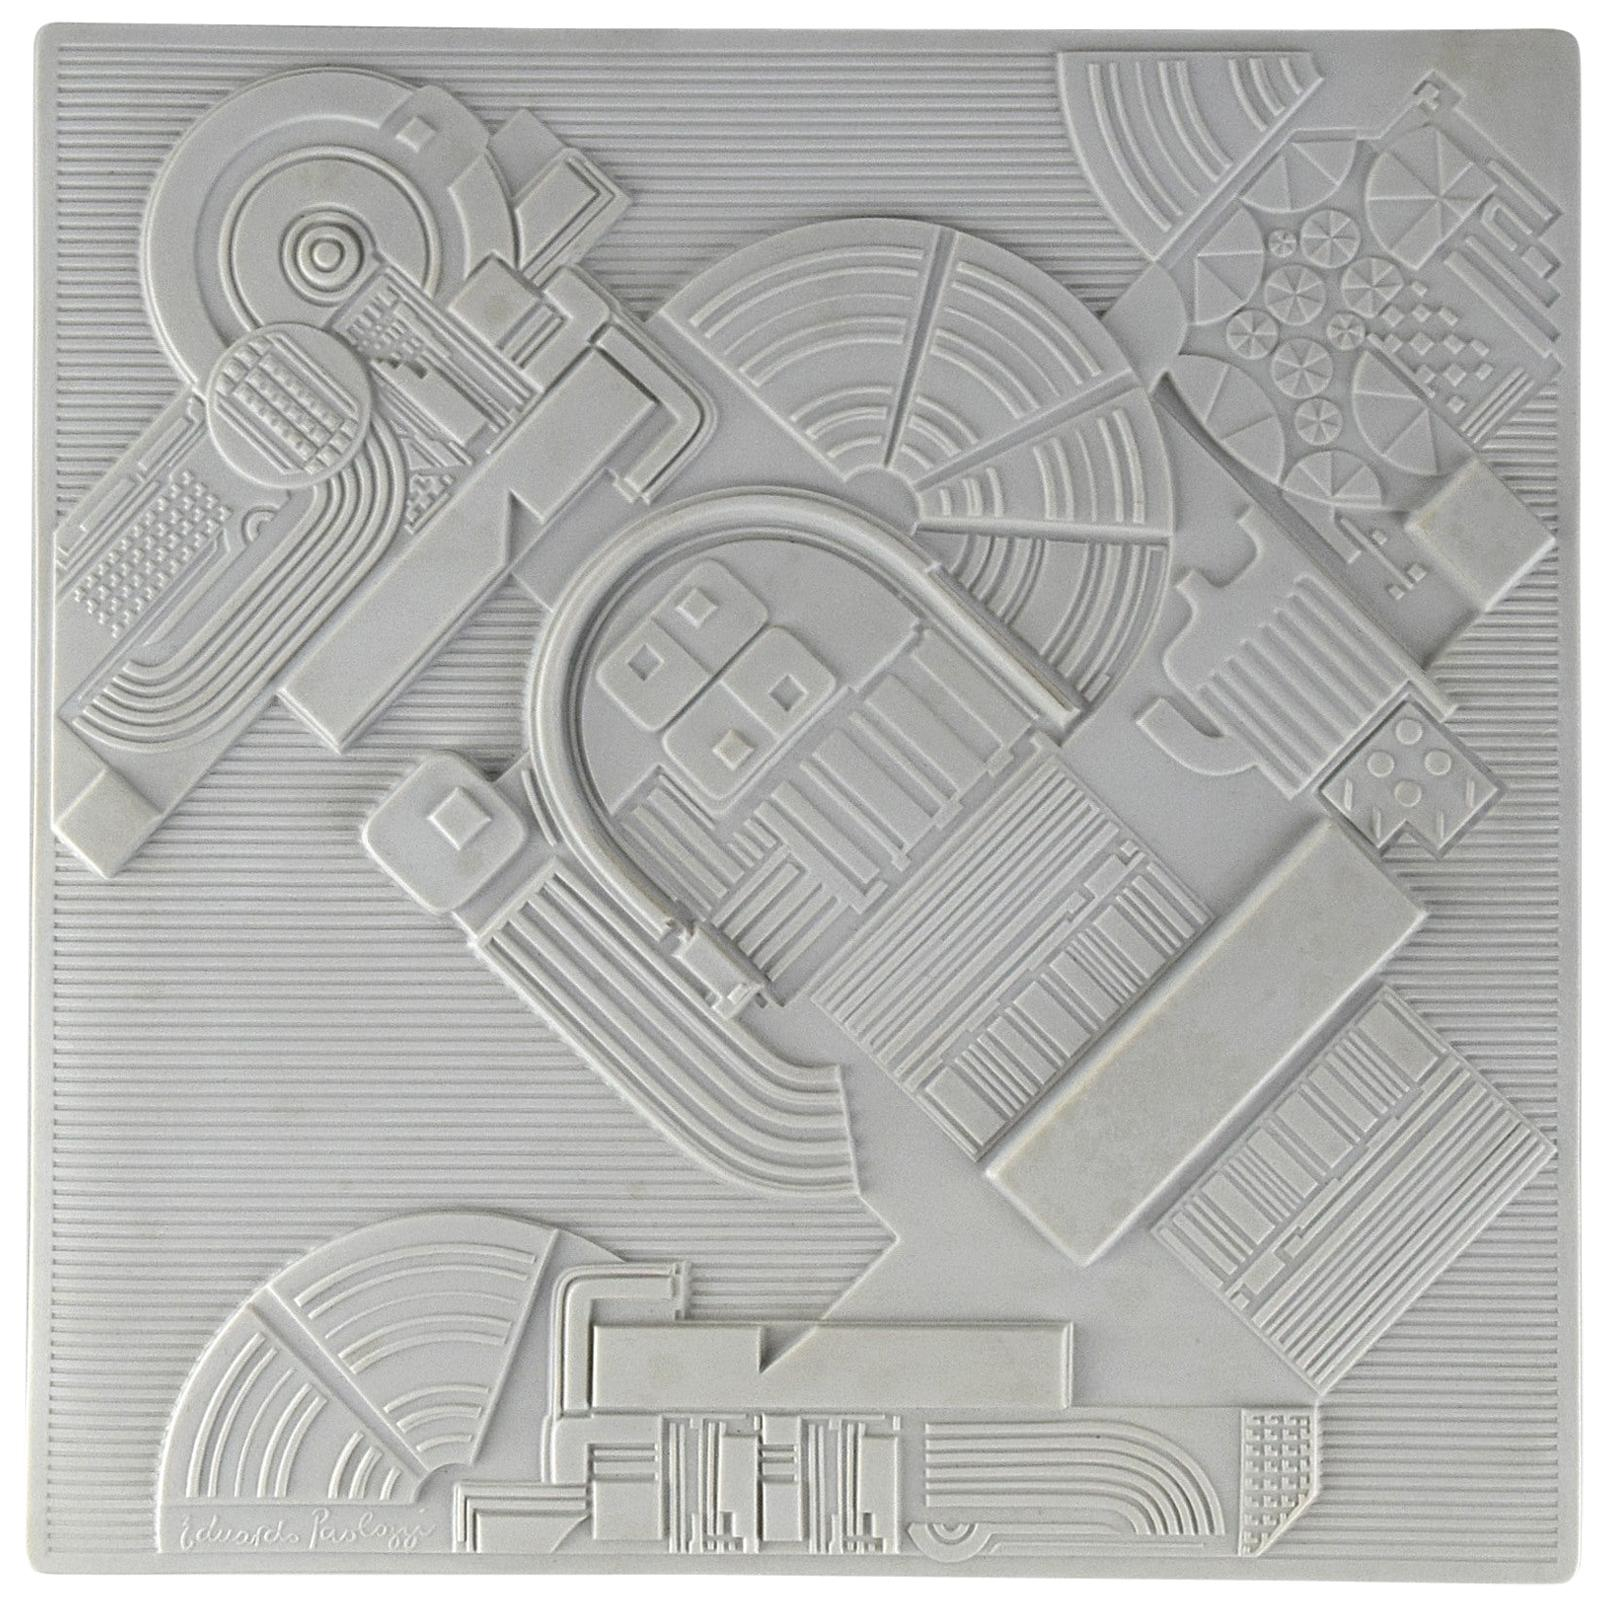 High Relief Porcelain Wall Sculpture by Eduardo Paolozzi for Rosenthal 1978